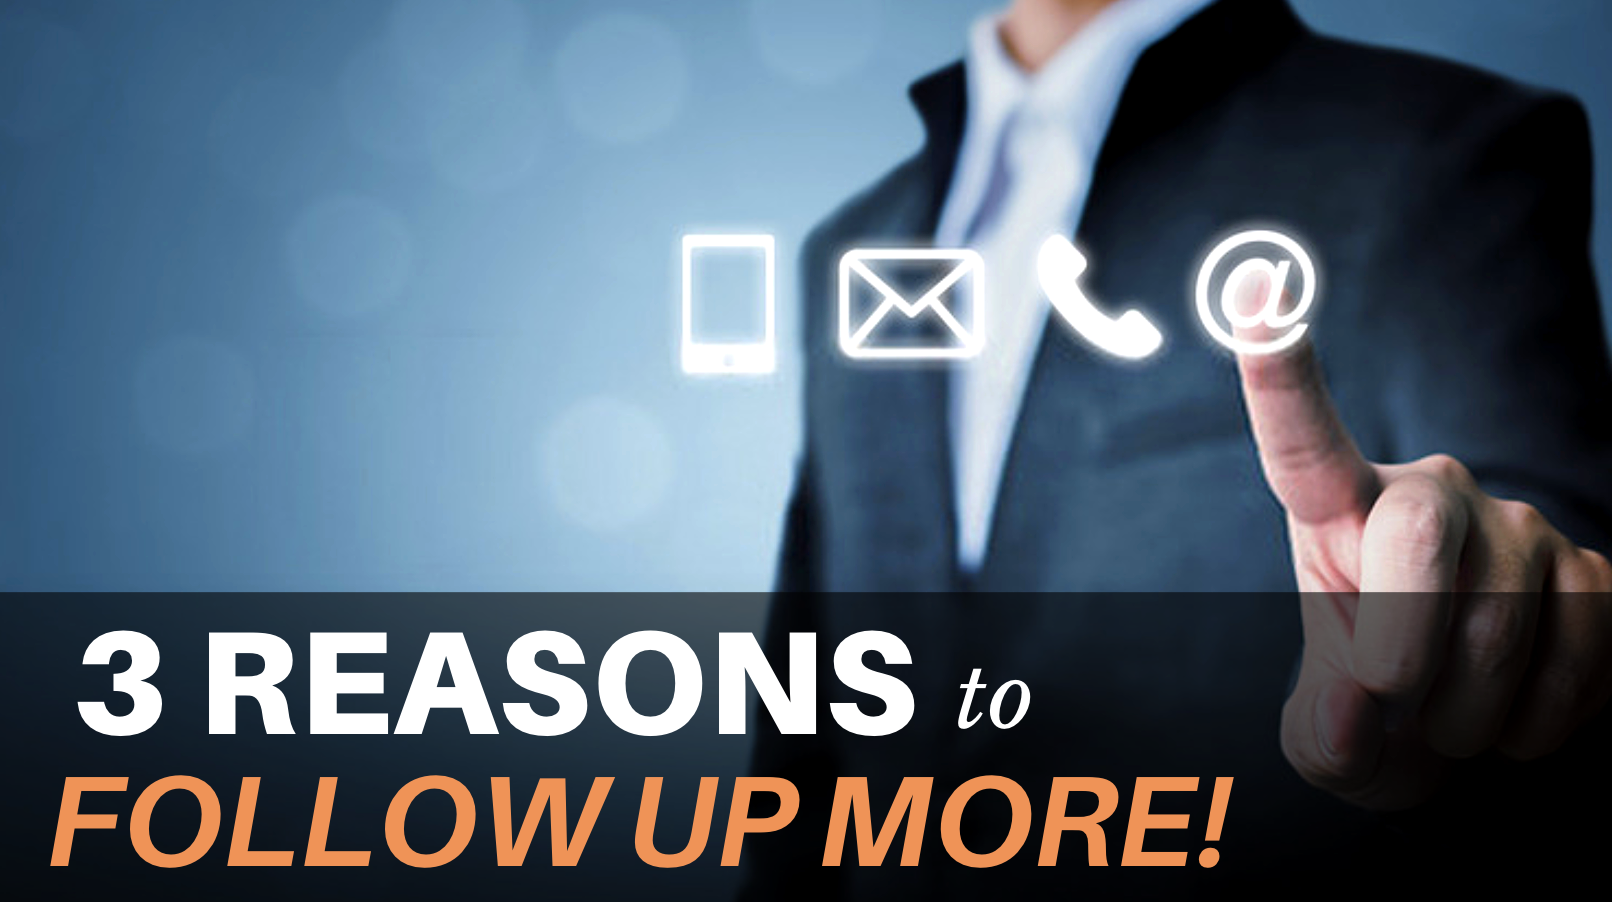 3 Reasons to Follow Up More!